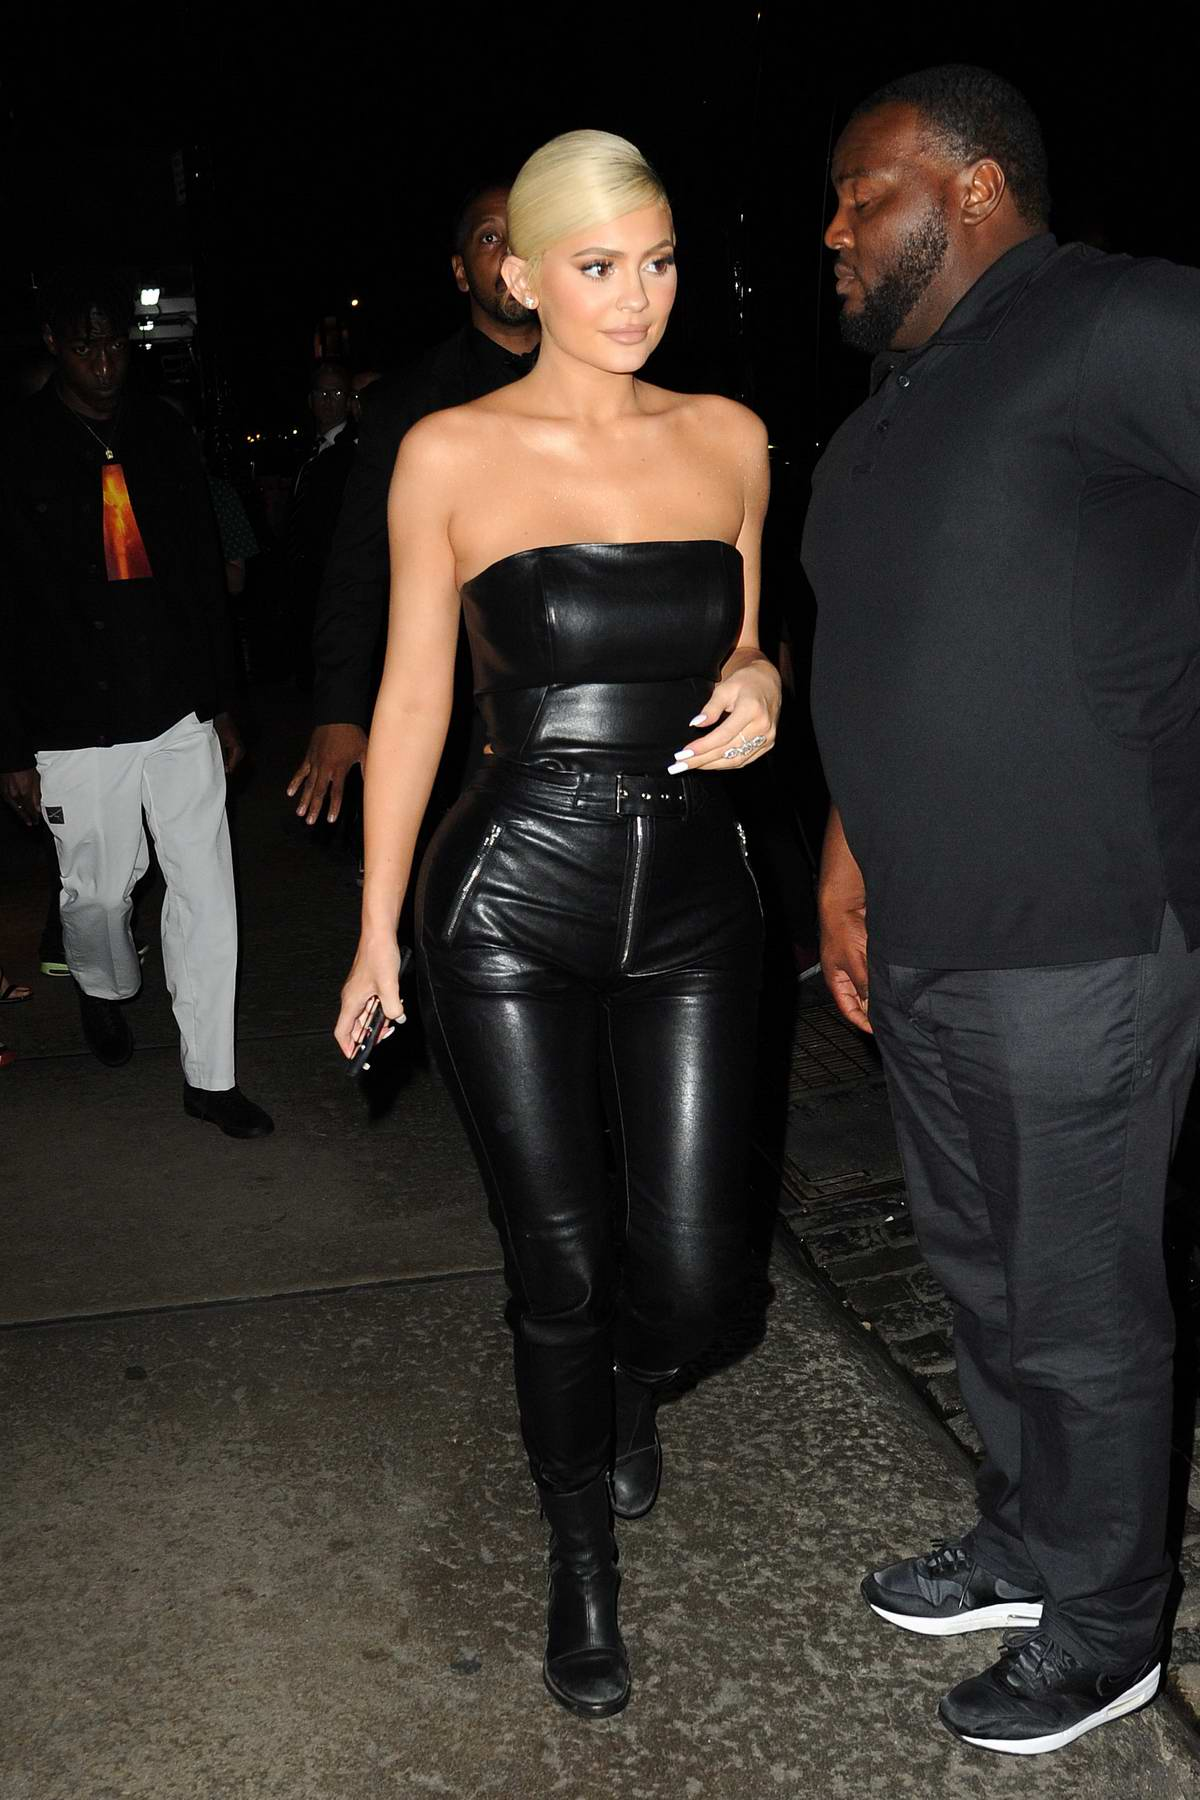 Kylie Jenner heads to the VMA 2018 after party in New York City